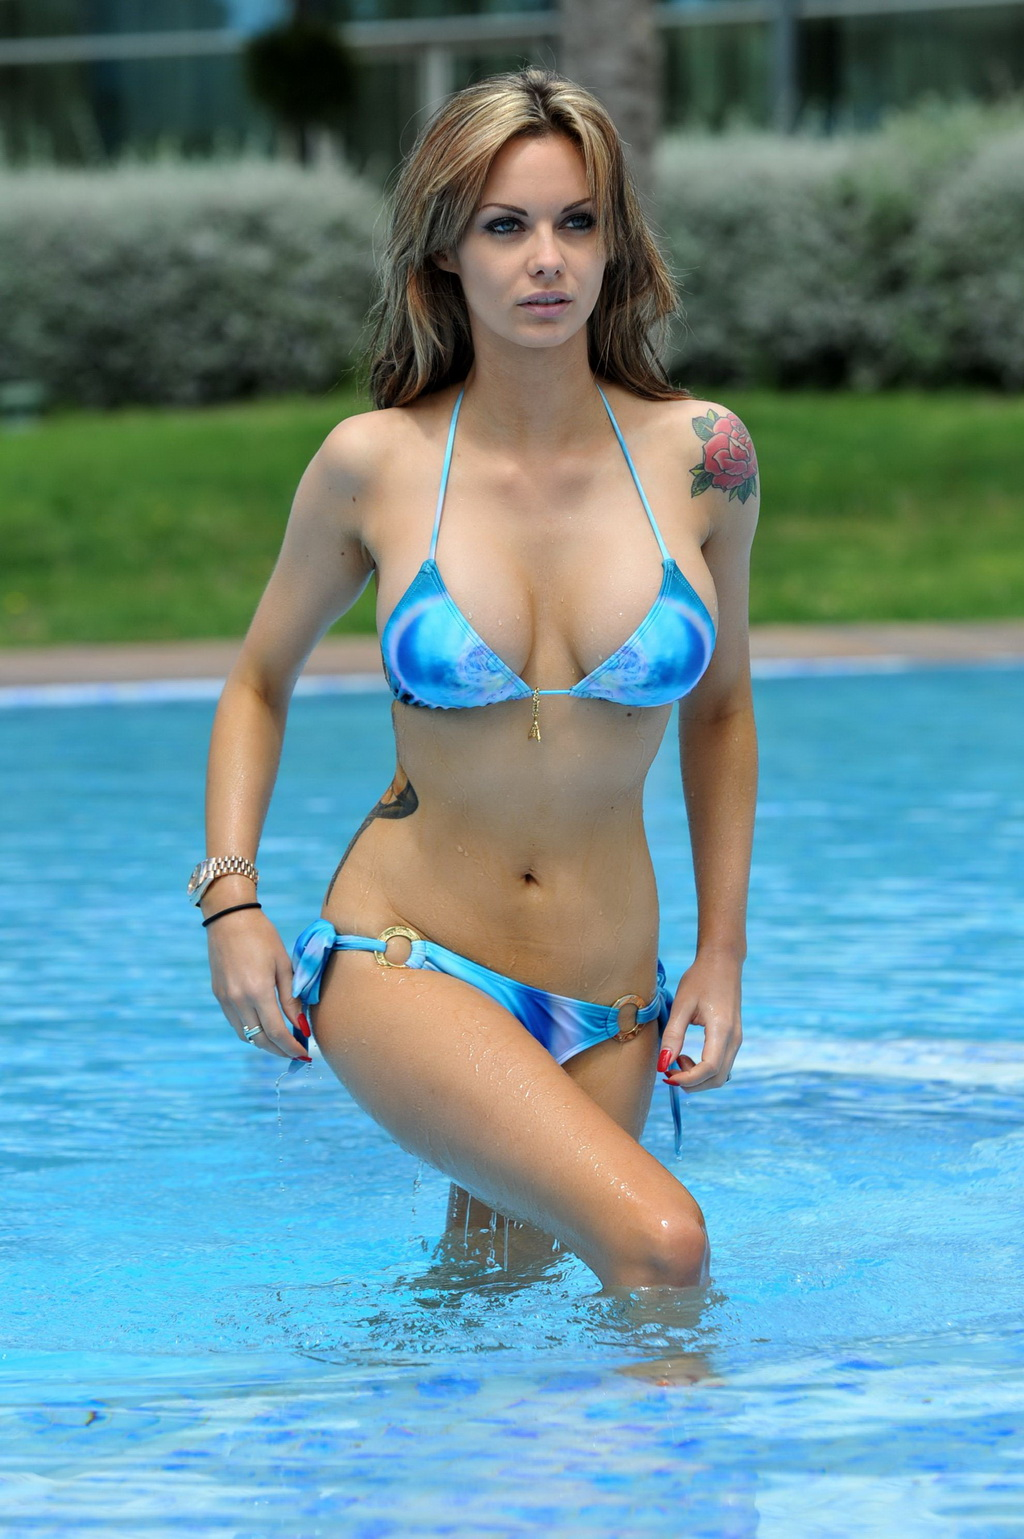 off her curvy body wearing skimpy blue bikini at the pool in i a